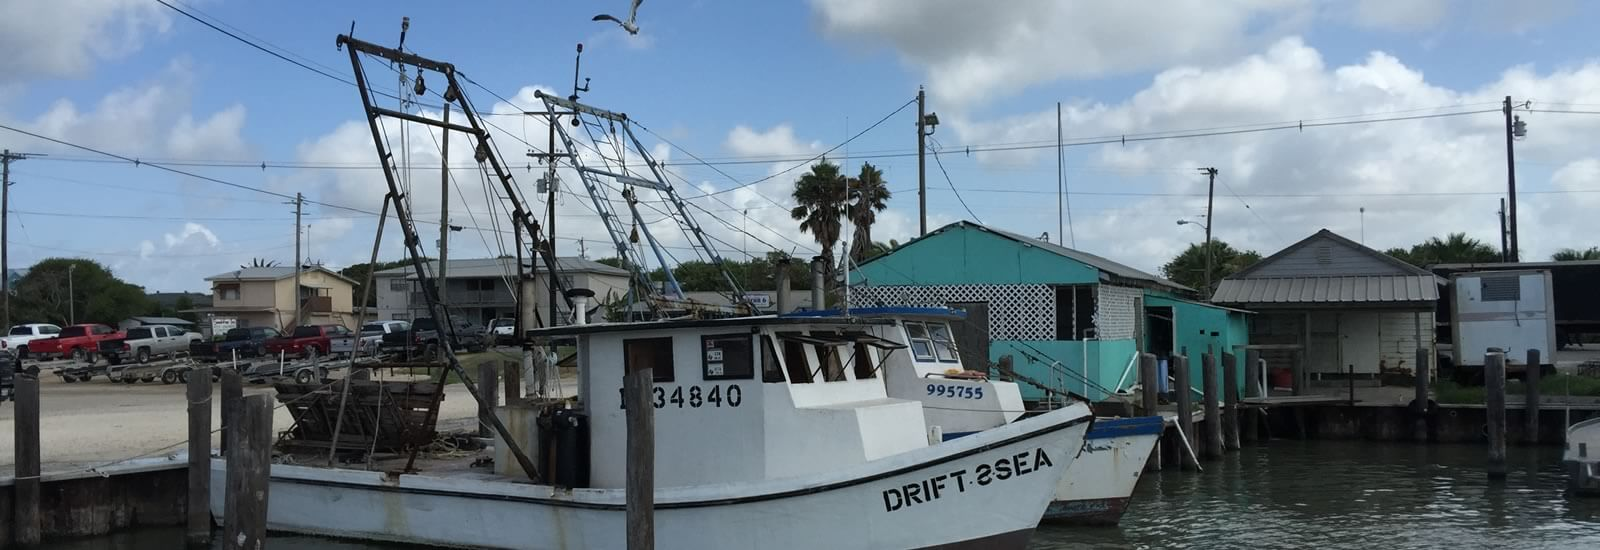 Seadrift Texas Harbor and Shrimp boat